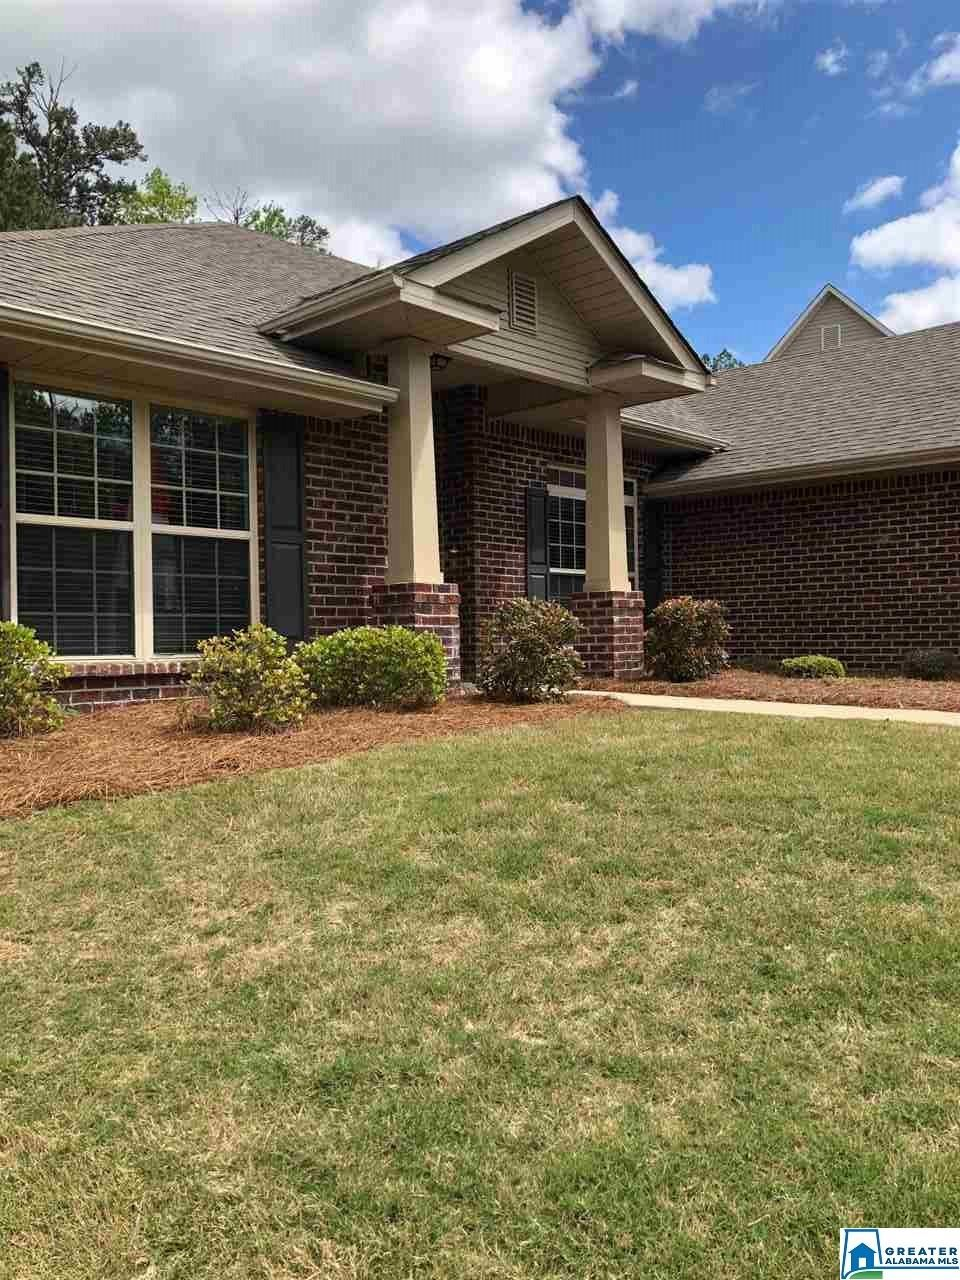 455 BROOKHAVEN DR, Margaret, AL 35120 - #: 881405